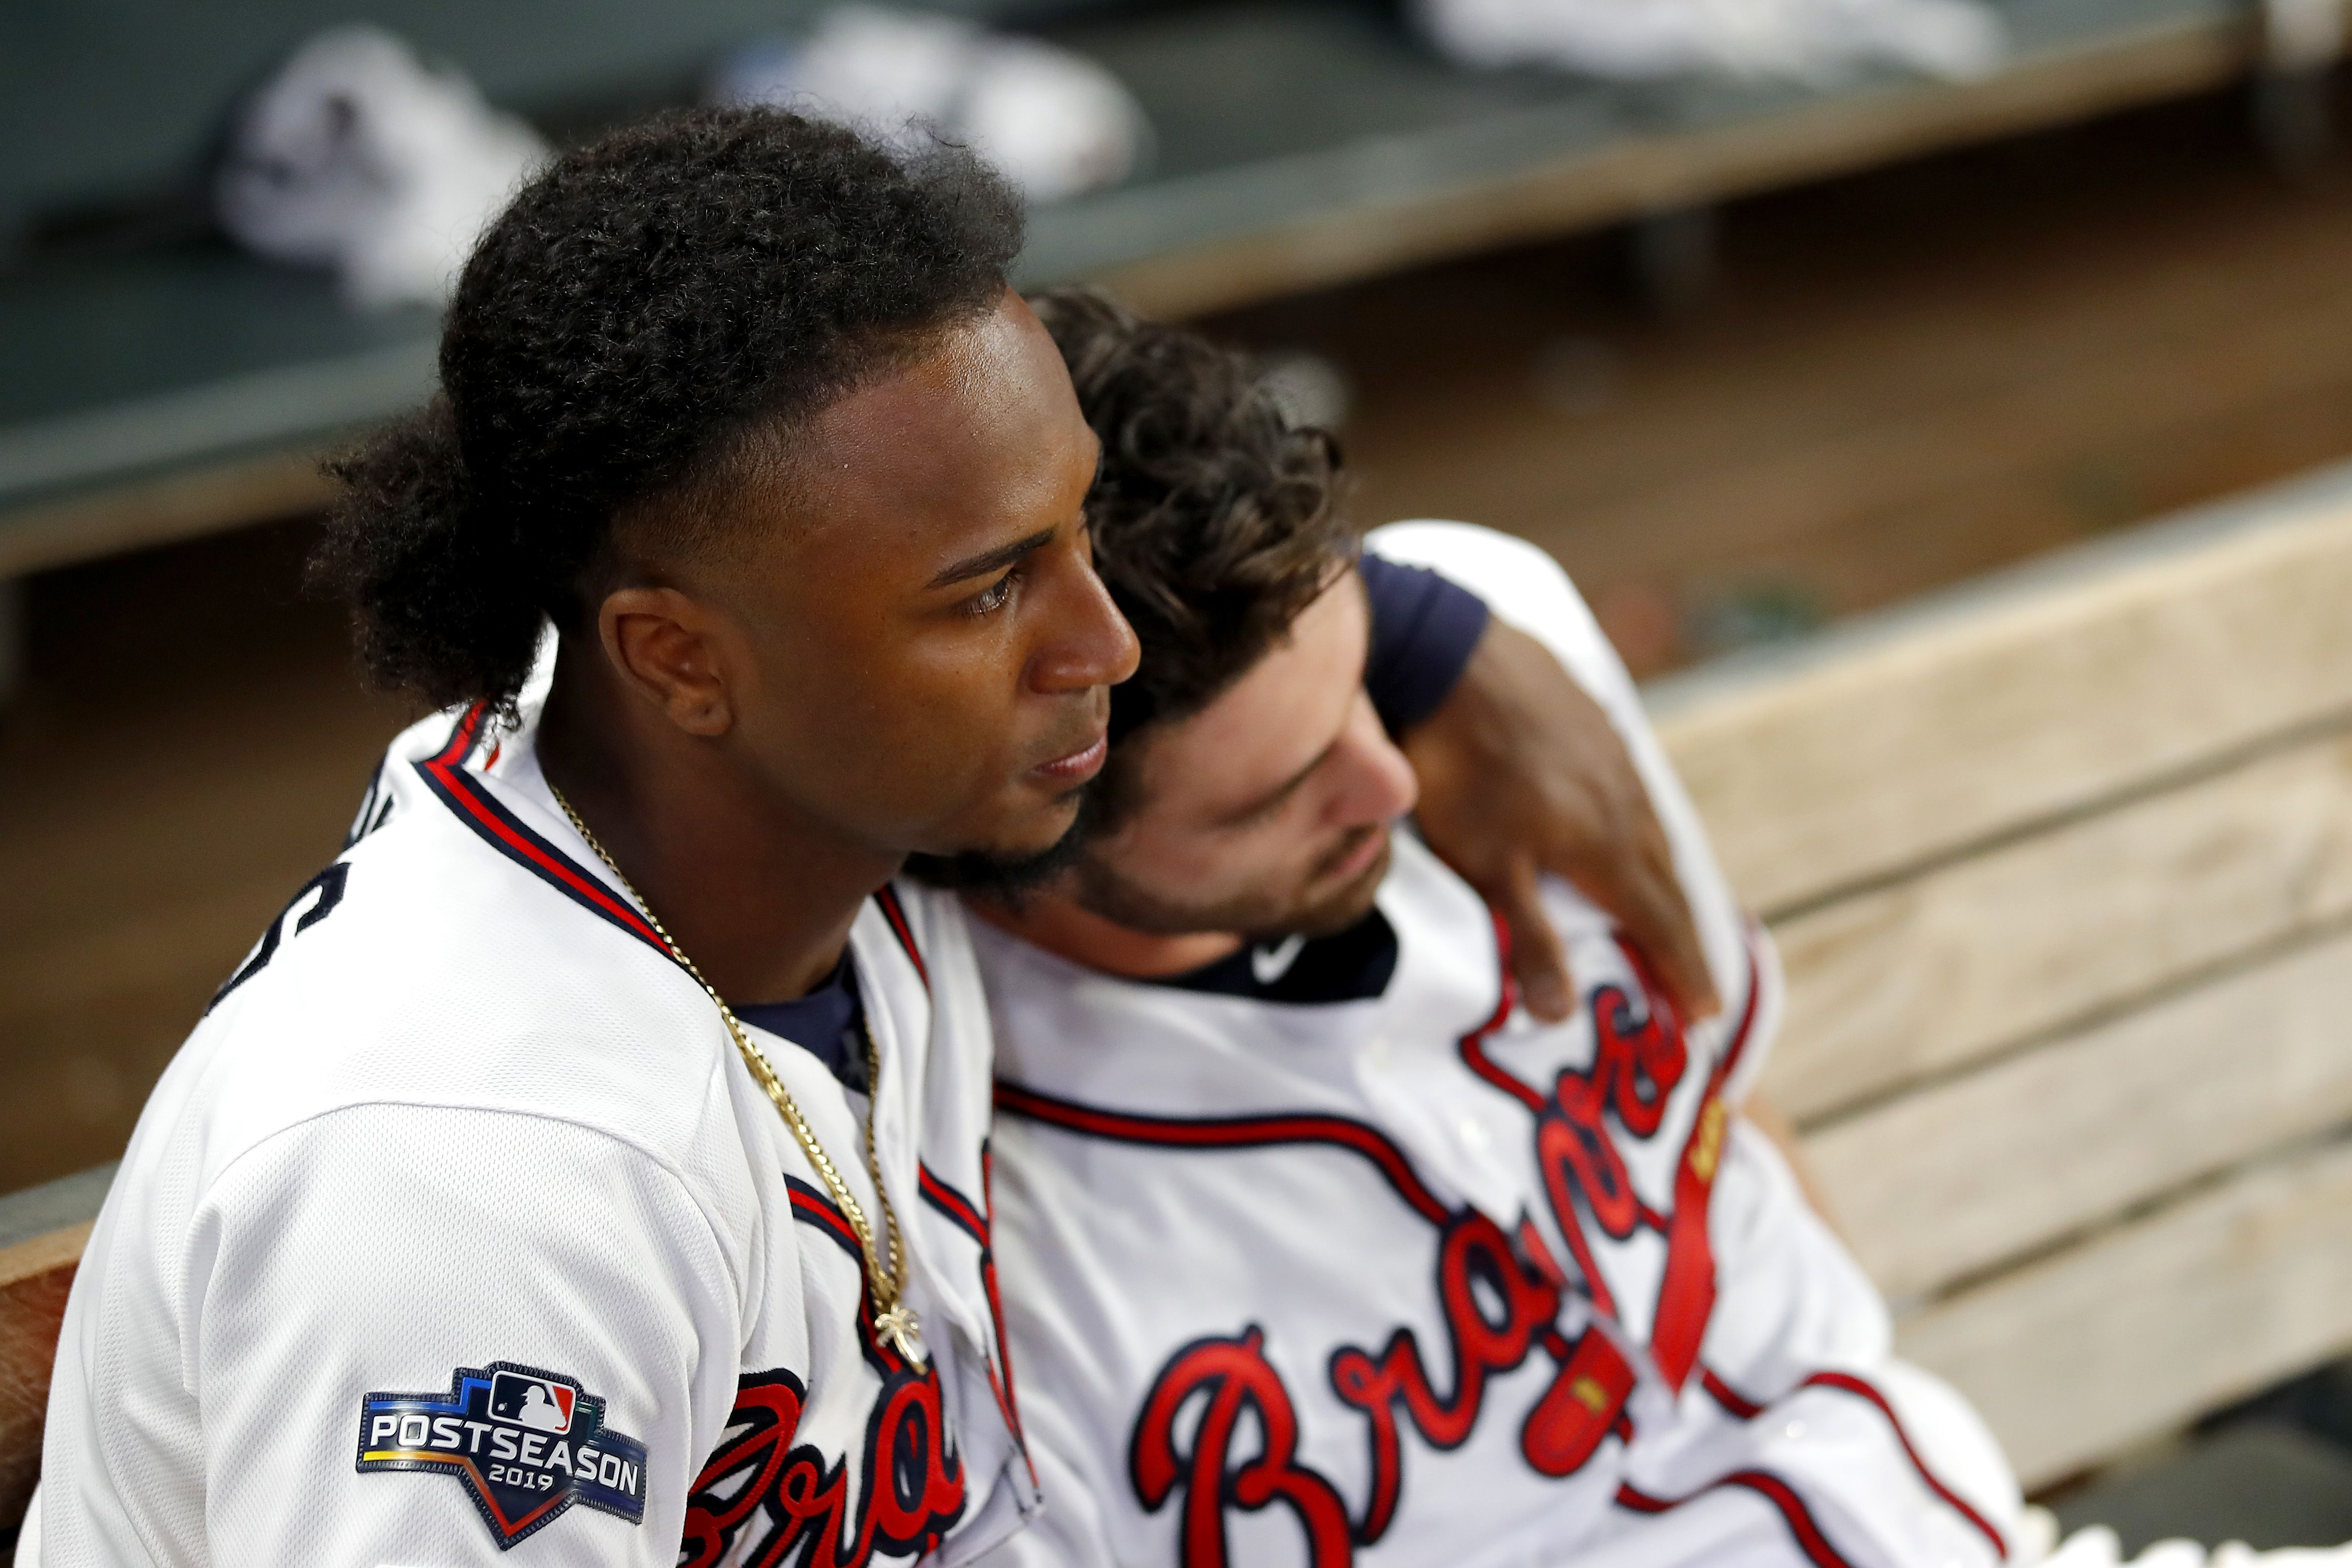 How can Atlanta sports fans ever get over this debacle?